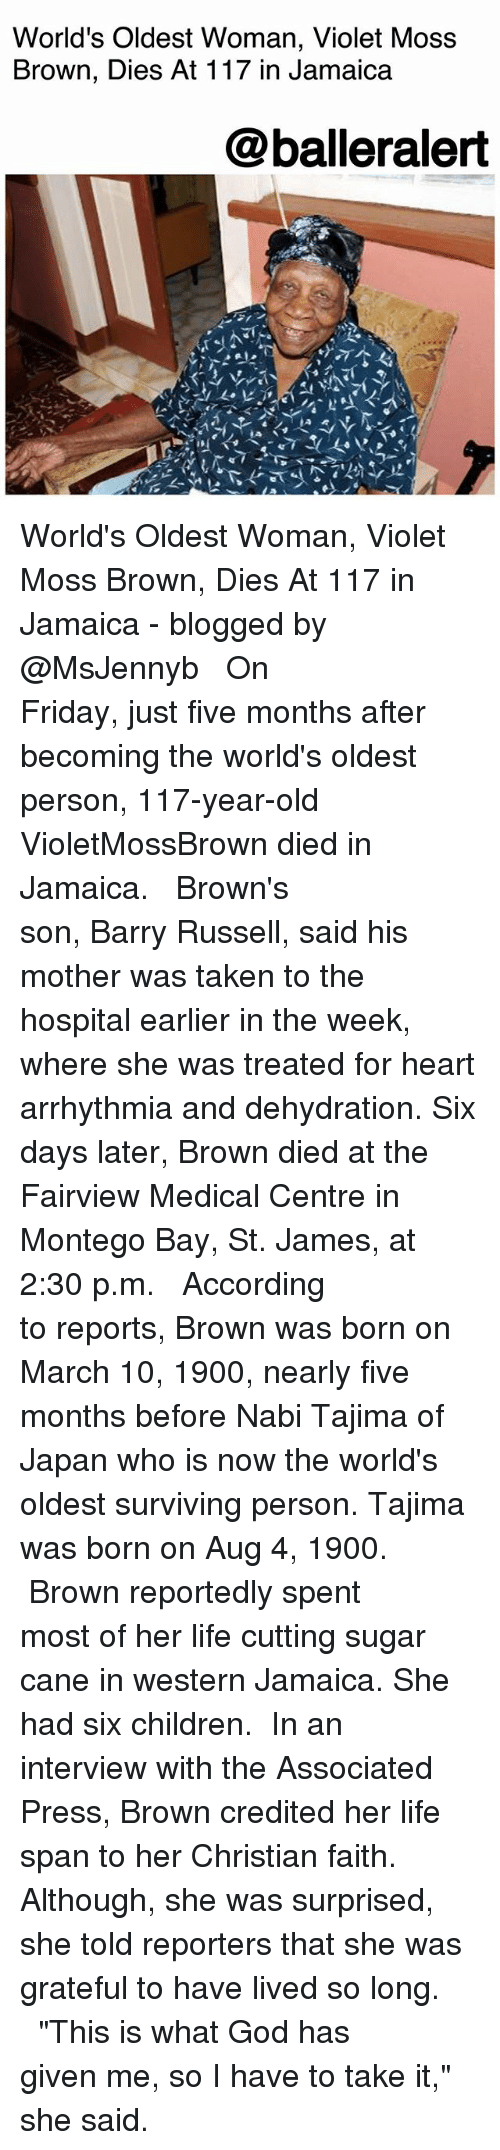 """Credited: World's Oldest Woman, Violet Moss  Brown, Dies At 117 in Jamaica  @balleralert World's Oldest Woman, Violet Moss Brown, Dies At 117 in Jamaica - blogged by @MsJennyb ⠀⠀⠀⠀⠀⠀⠀ ⠀⠀⠀⠀⠀⠀⠀ On Friday, just five months after becoming the world's oldest person, 117-year-old VioletMossBrown died in Jamaica. ⠀⠀⠀⠀⠀⠀⠀ ⠀⠀⠀⠀⠀⠀⠀ Brown's son, Barry Russell, said his mother was taken to the hospital earlier in the week, where she was treated for heart arrhythmia and dehydration. Six days later, Brown died at the Fairview Medical Centre in Montego Bay, St. James, at 2:30 p.m. ⠀⠀⠀⠀⠀⠀⠀ ⠀⠀⠀⠀⠀⠀⠀ According to reports, Brown was born on March 10, 1900, nearly five months before Nabi Tajima of Japan who is now the world's oldest surviving person. Tajima was born on Aug 4, 1900. ⠀⠀⠀⠀⠀⠀⠀ ⠀⠀⠀⠀⠀⠀⠀ Brown reportedly spent most of her life cutting sugar cane in western Jamaica. She had six children. ⠀⠀⠀⠀⠀⠀⠀ In an interview with the Associated Press, Brown credited her life span to her Christian faith. Although, she was surprised, she told reporters that she was grateful to have lived so long. ⠀⠀⠀⠀⠀⠀⠀ ⠀⠀⠀⠀⠀⠀⠀ """"This is what God has given me, so I have to take it,"""" she said."""